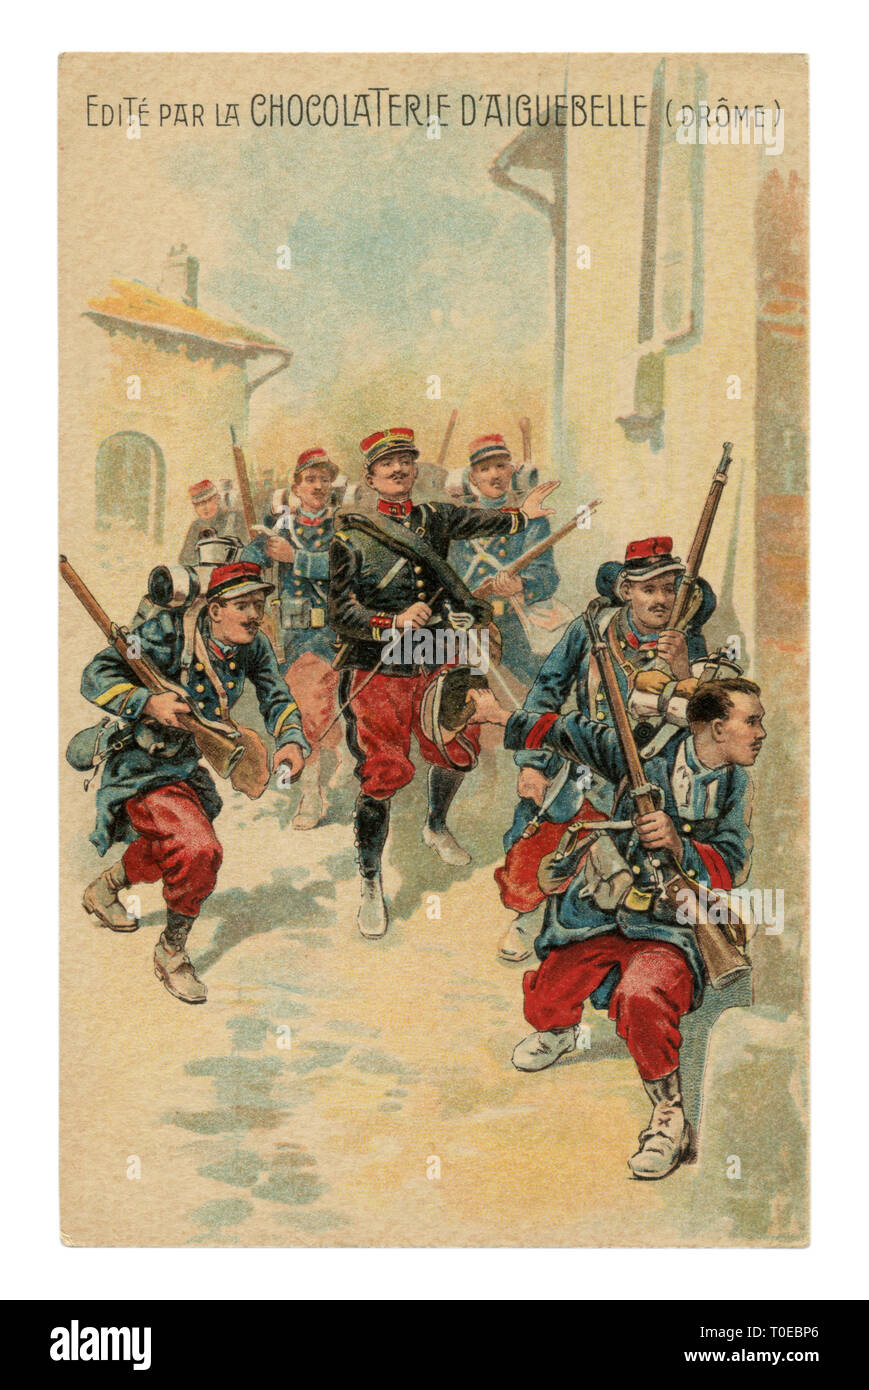 French historical advertising chromolithographic postcard: officer leads a soldier infantry with rifles through the streets of the enemy city, street - Stock Image